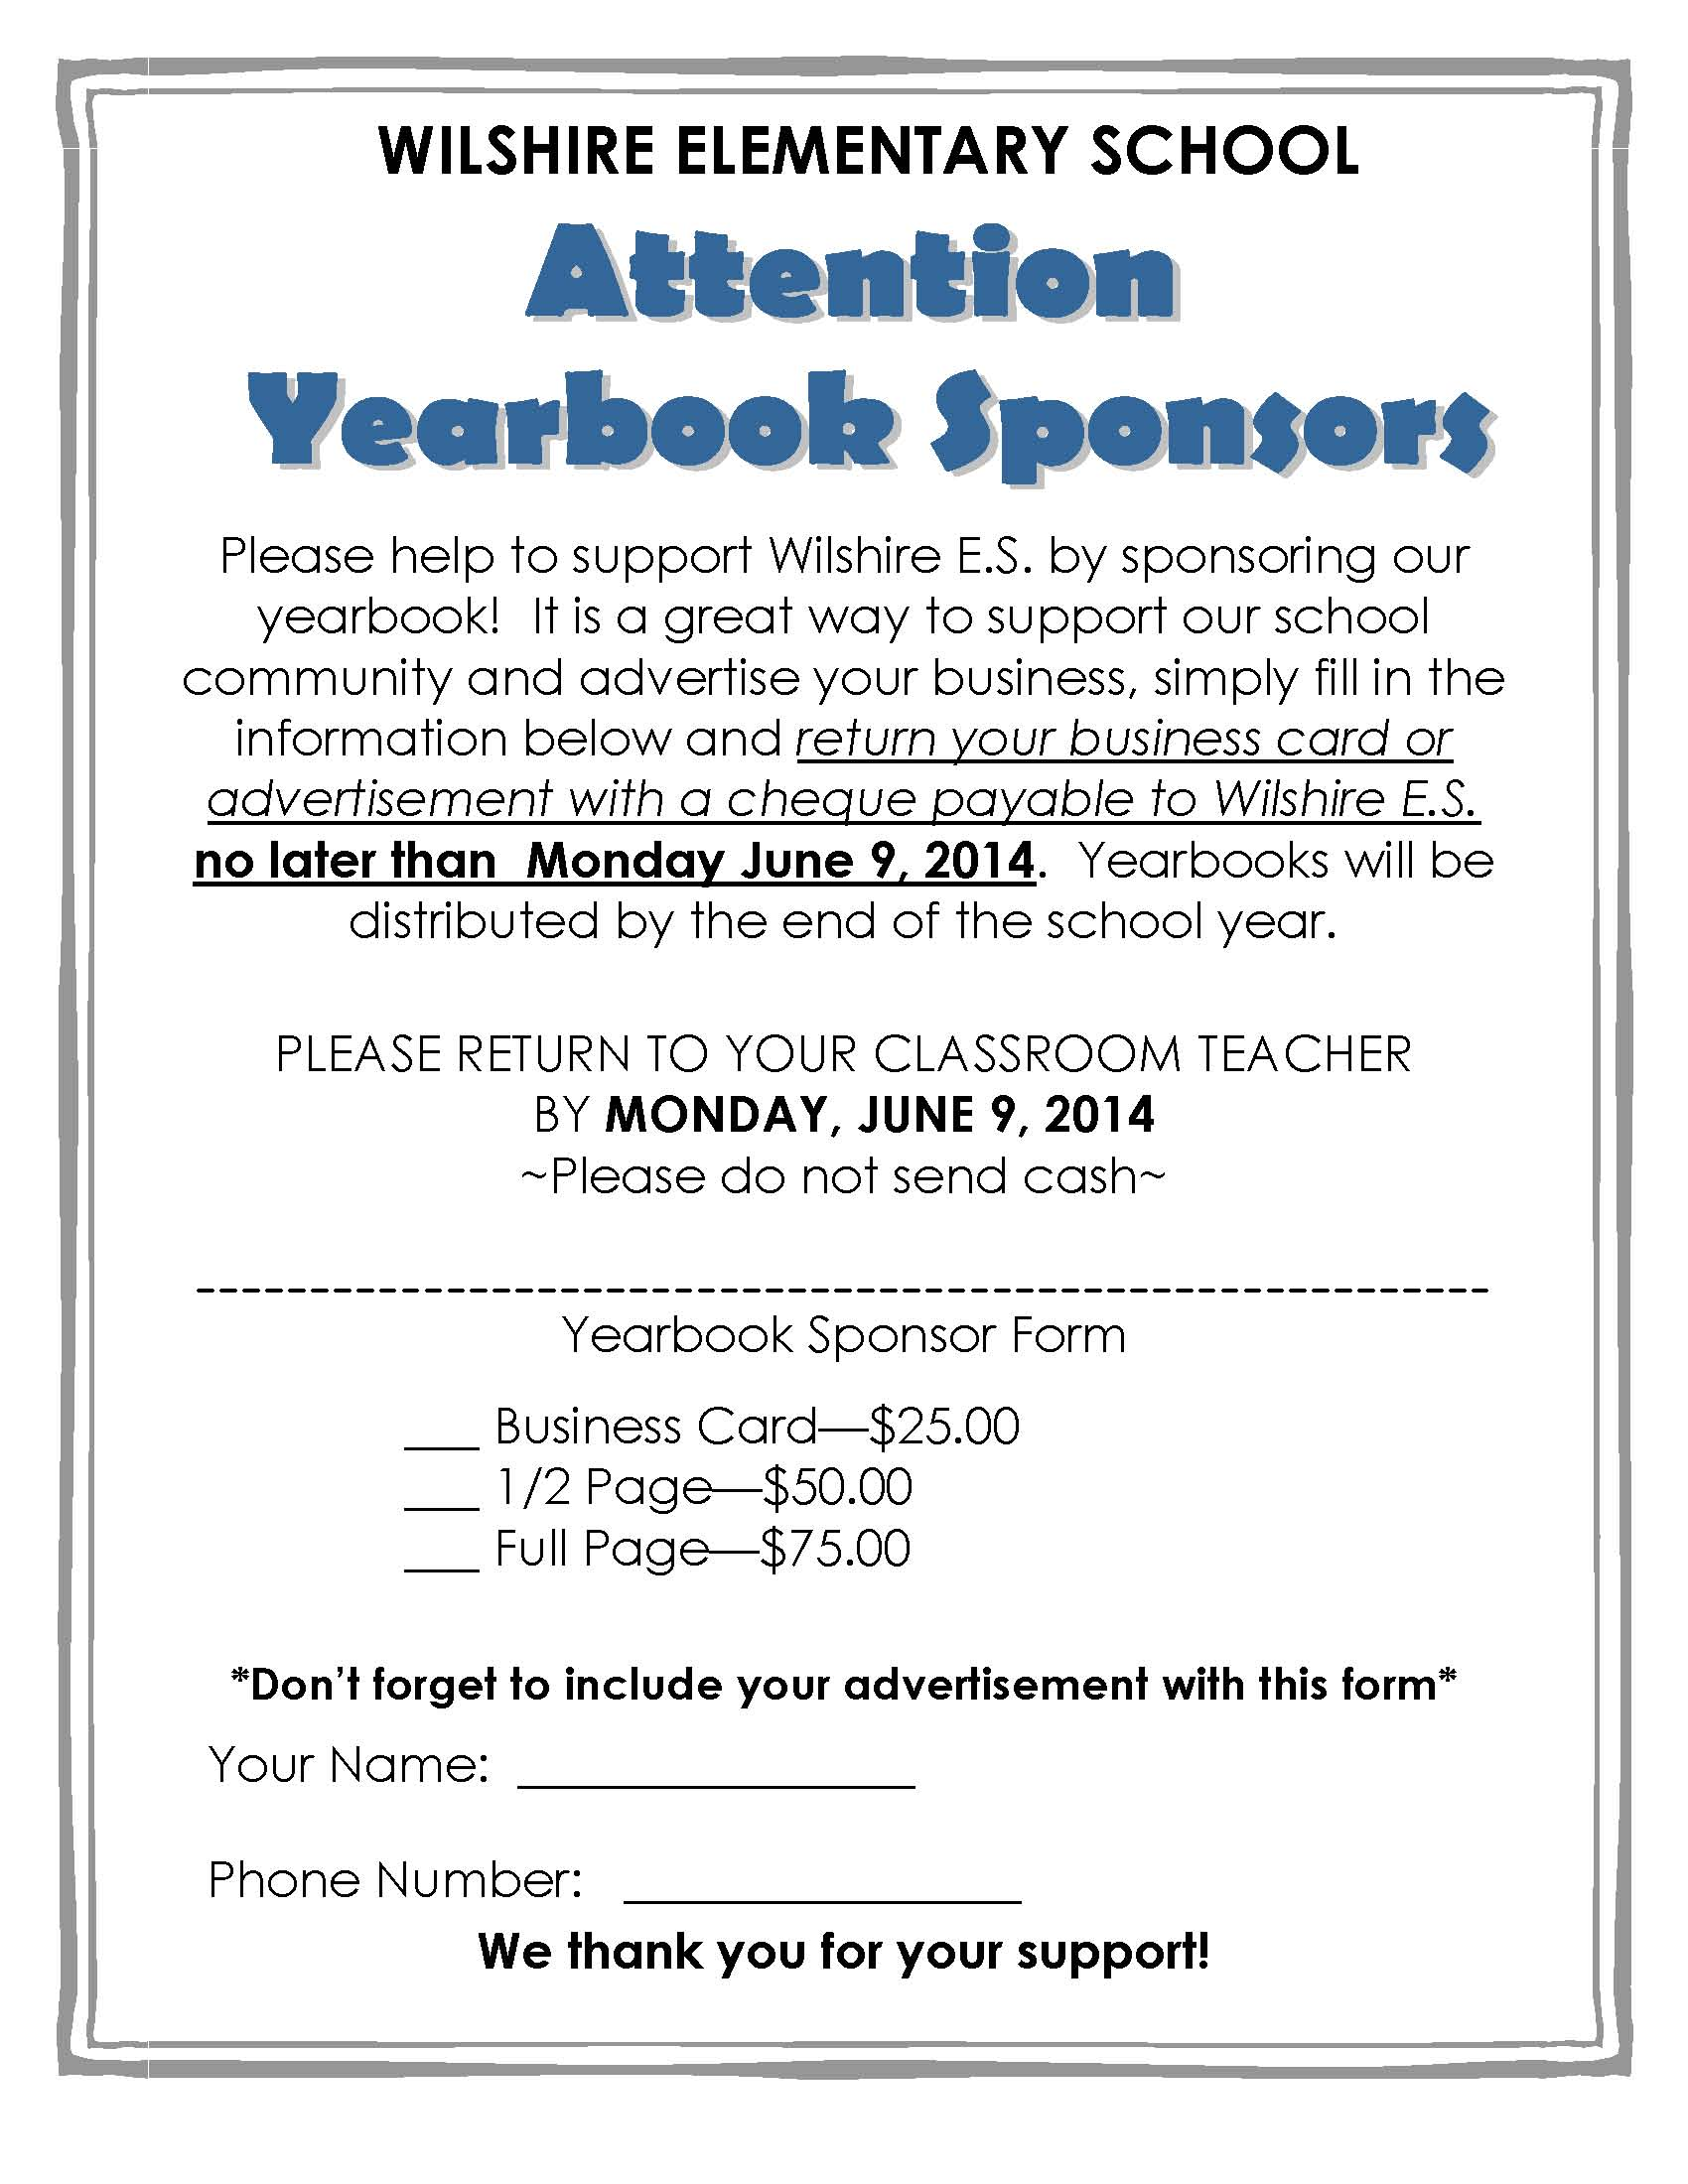 Wilshire Yearbook Order Form 2013 14 Sponsor Letter